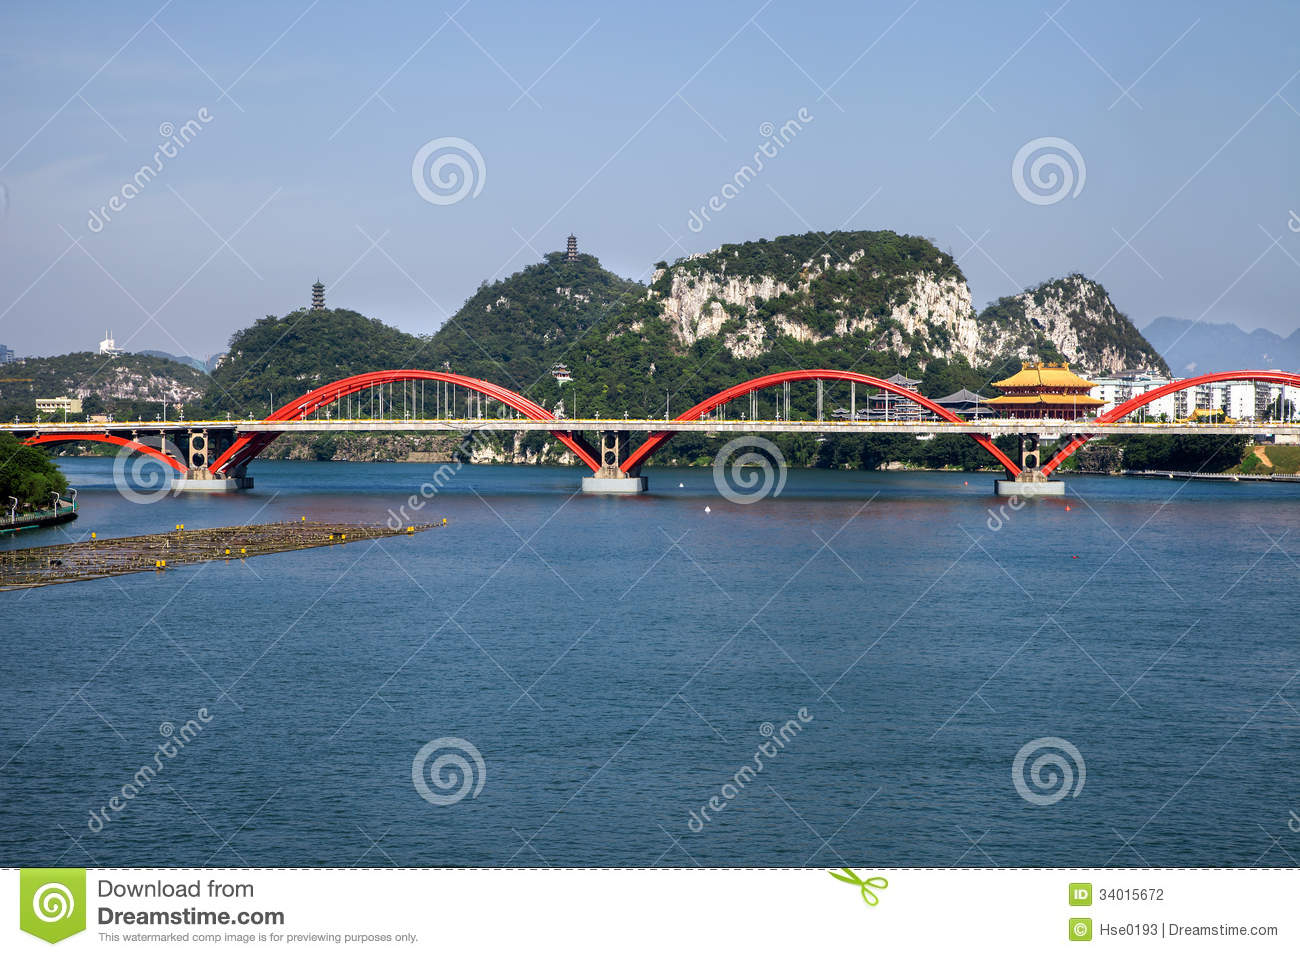 Arch bridge on river with natural landscape,Liuzhou,China